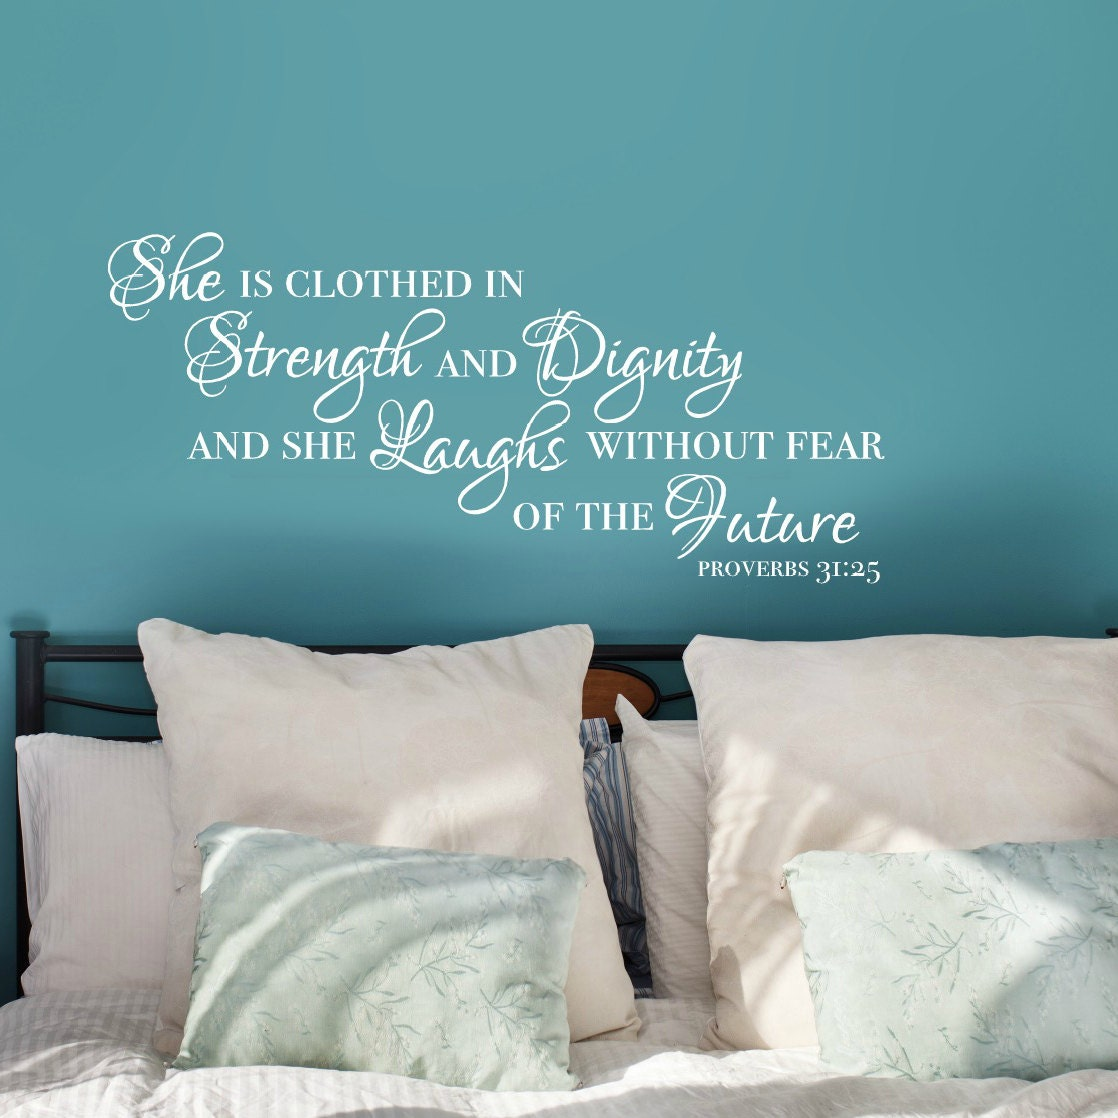 Dignity Wall: She Is Clothed In Strength And Dignity Proverbs 31 25 Wall